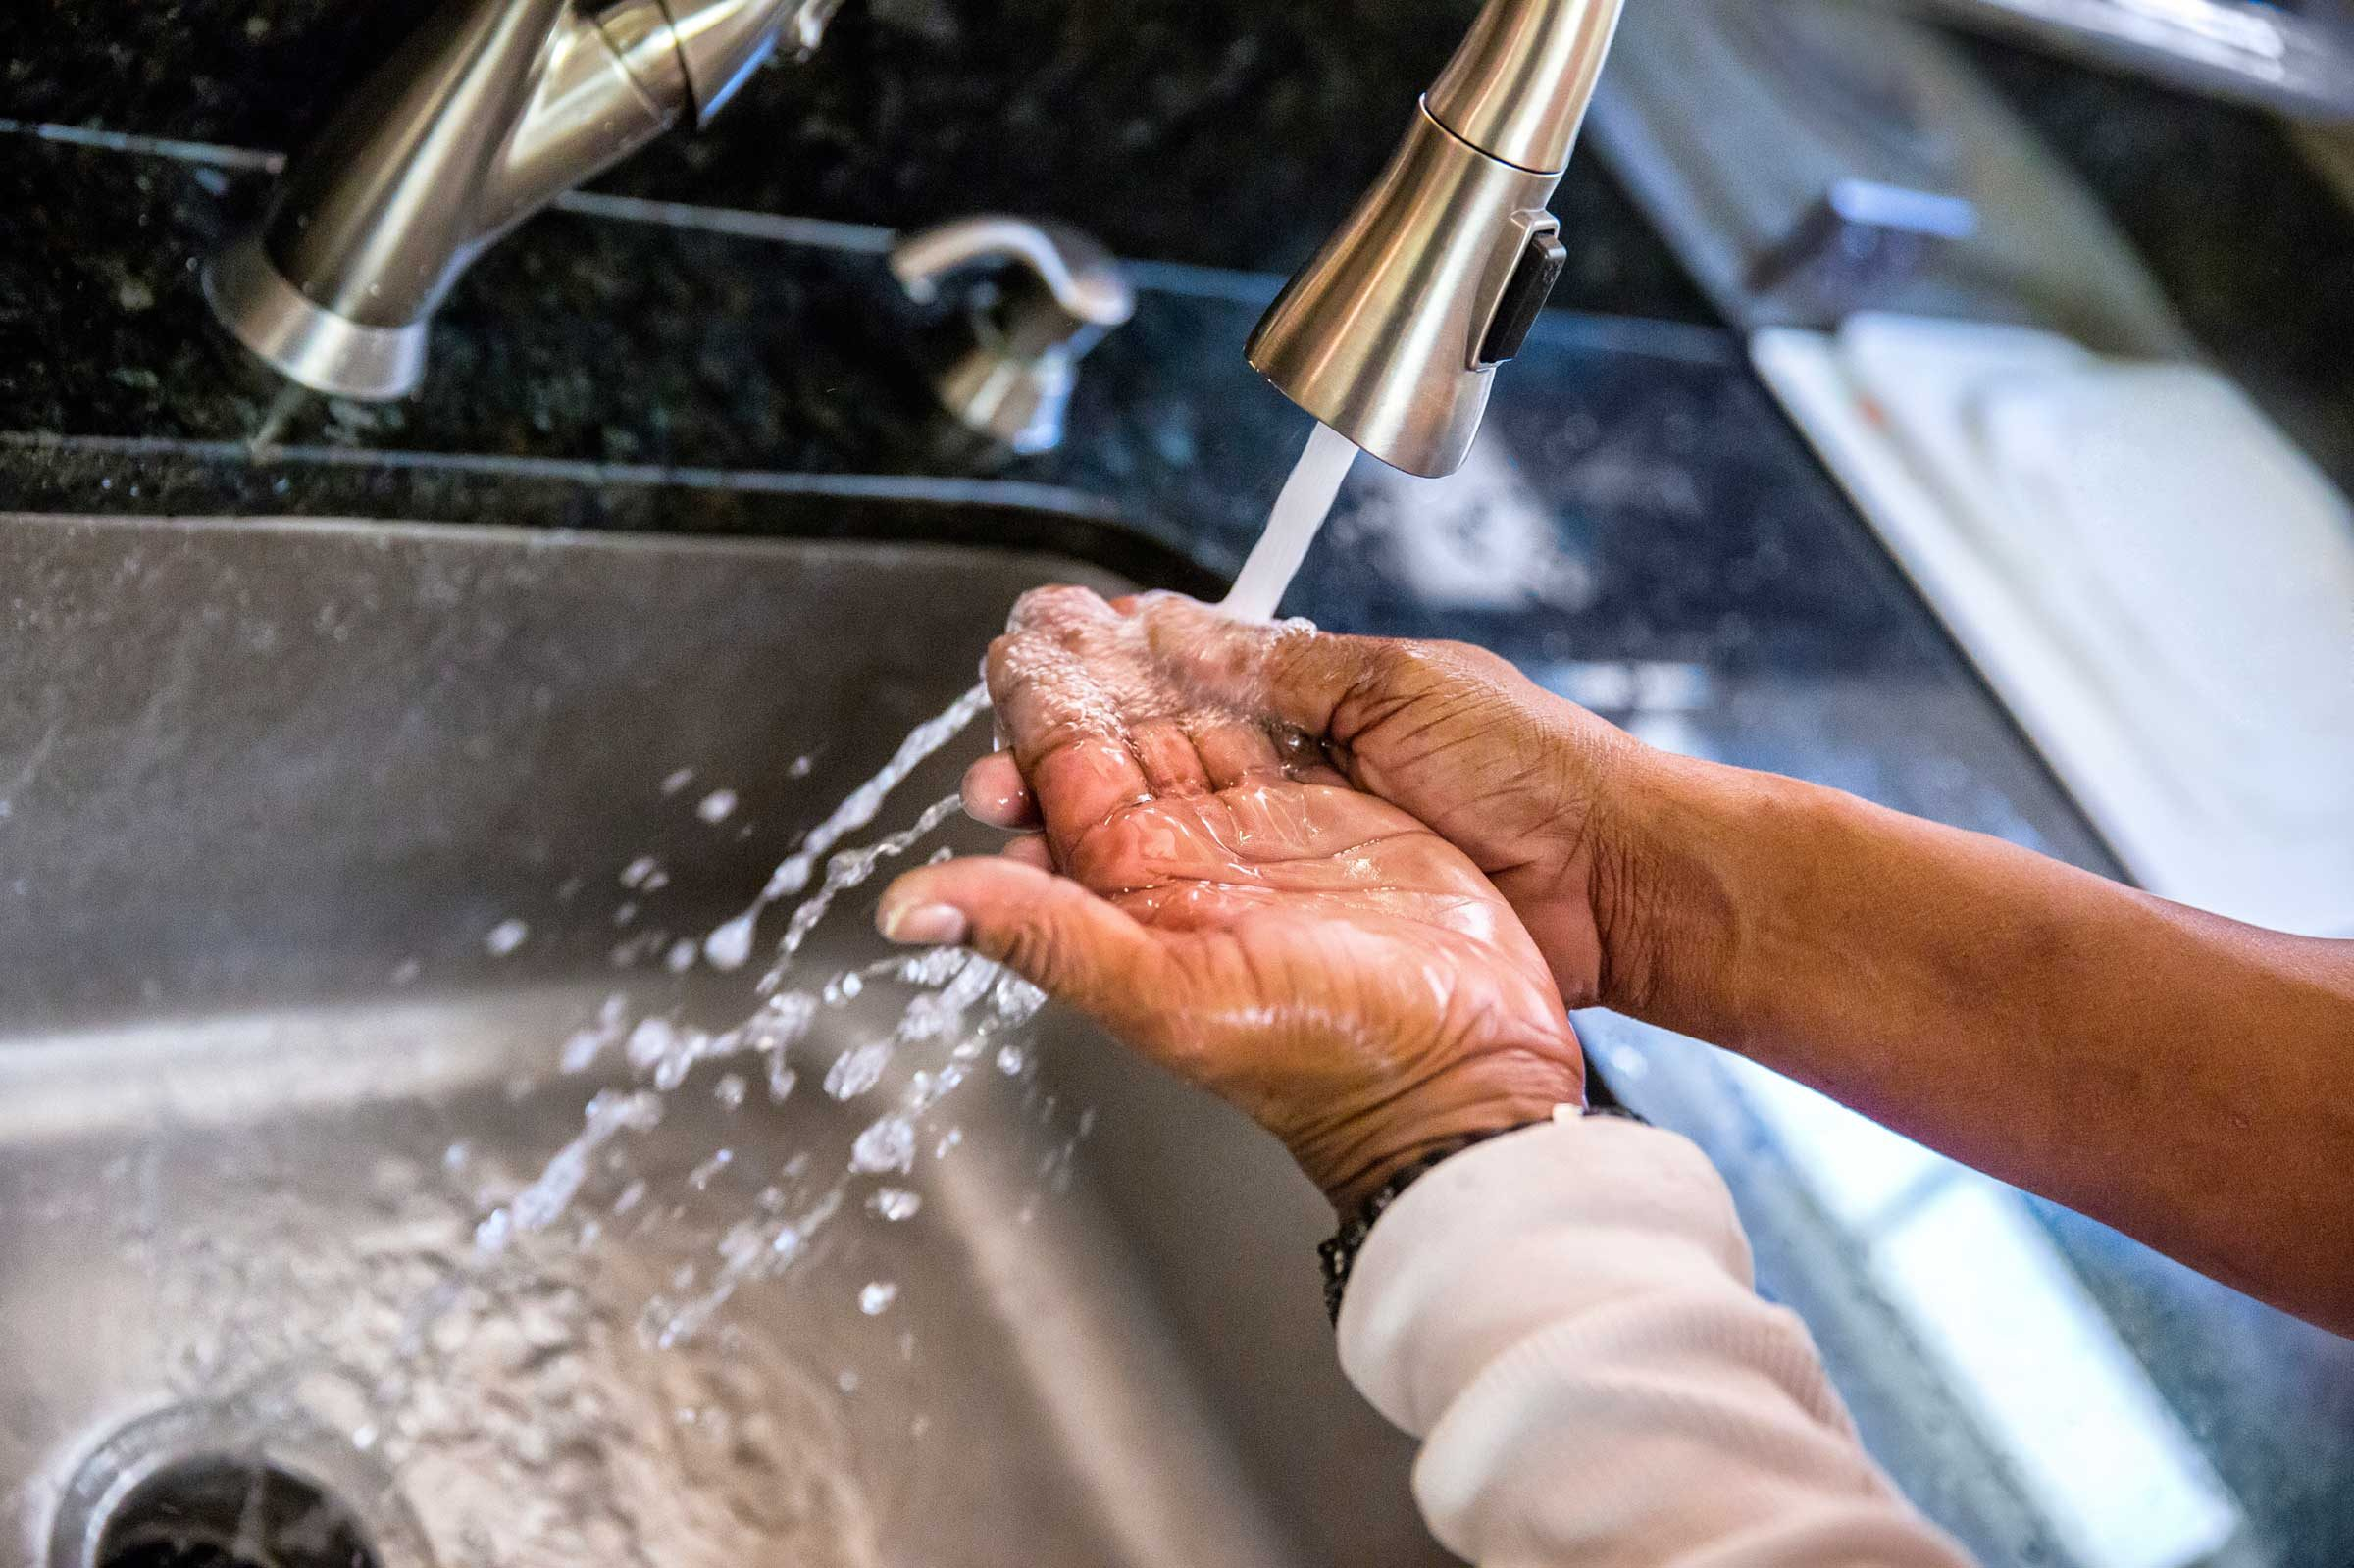 health tips wash hands before cooking